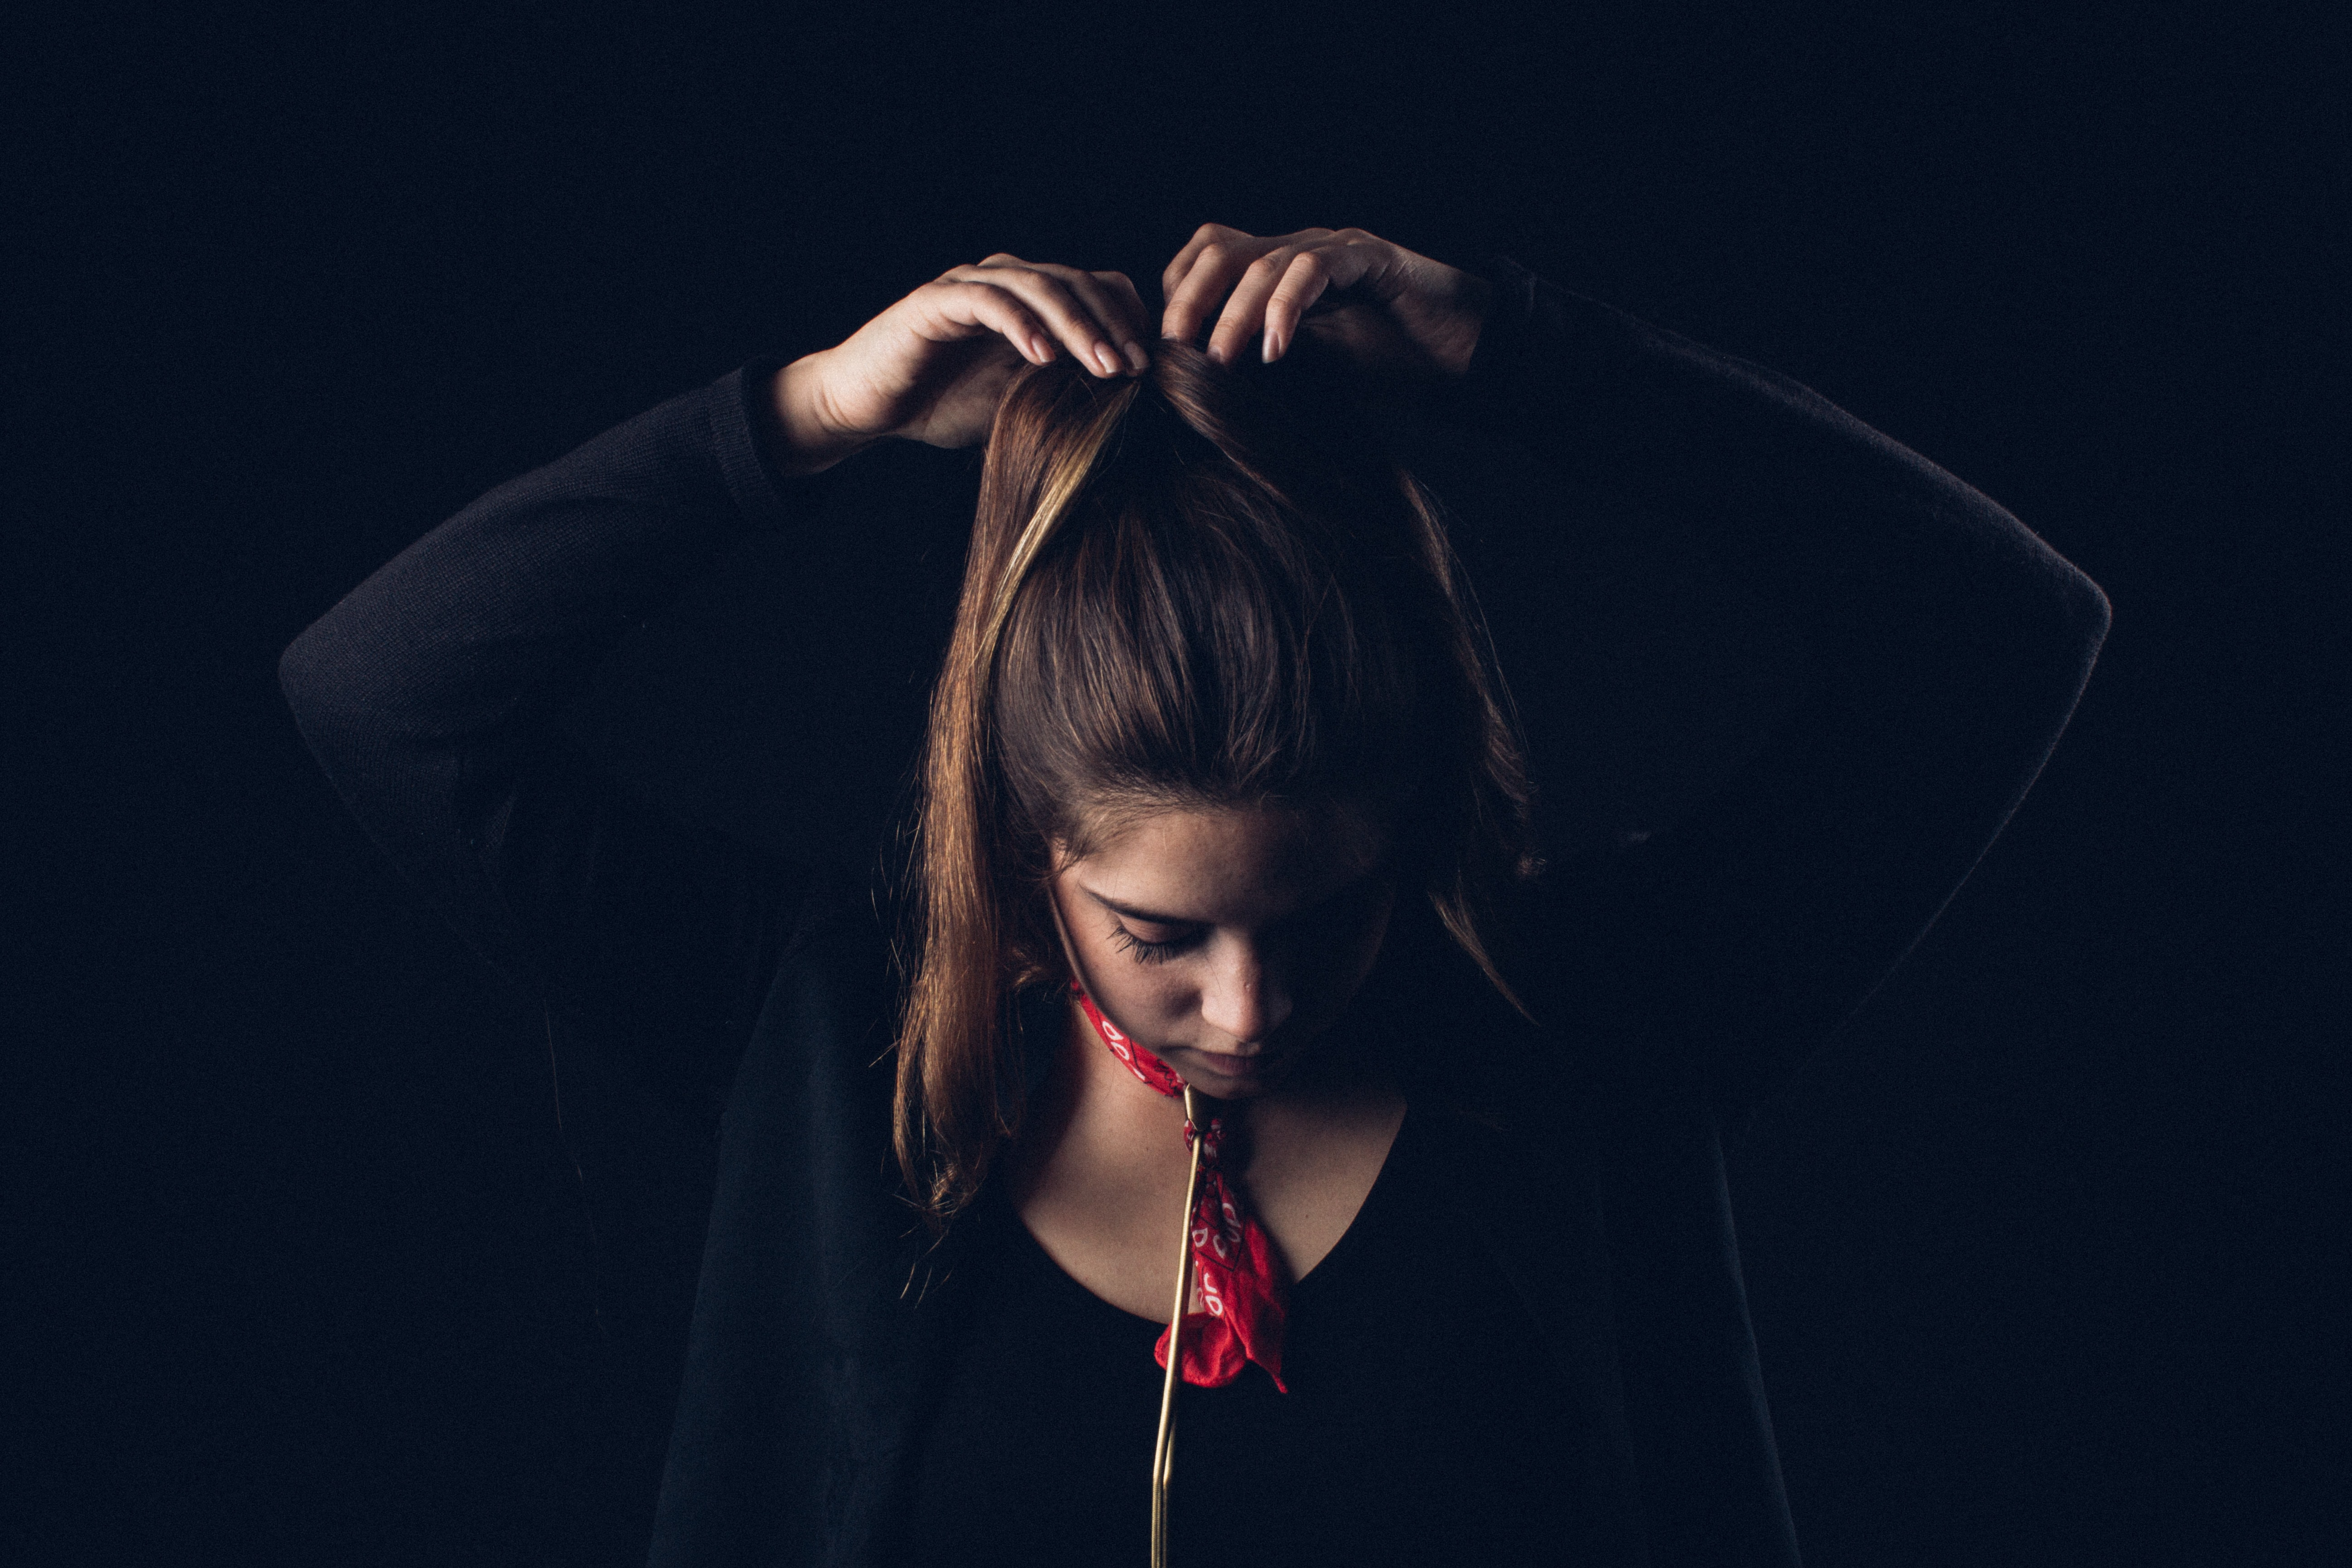 woman tying hair with both hands